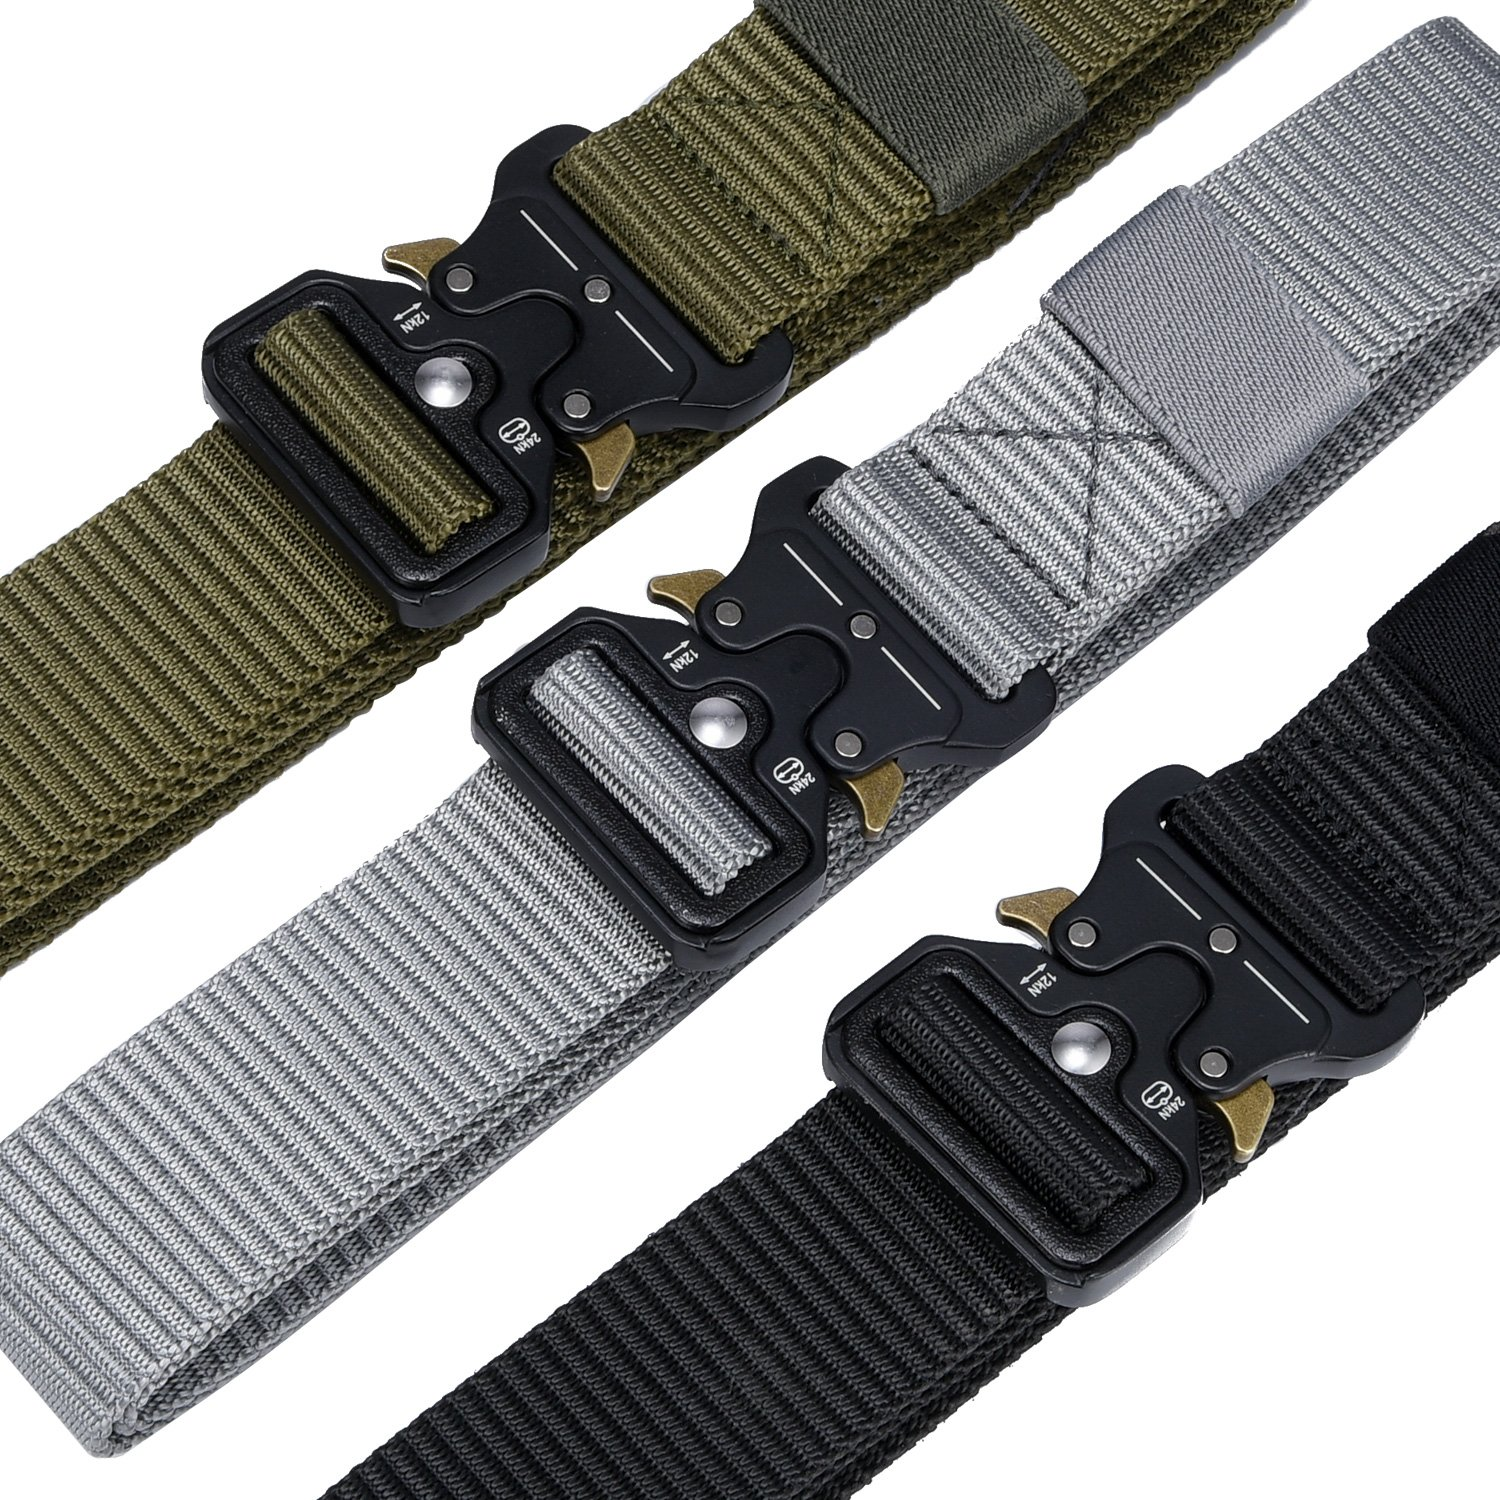 Military Tactical Belt,Quick Release Buckle, Long 43''-55'' Wide1.5'',Heavy Duty Waist Belt (Black, 47 inch) by MarkPorda (Image #6)